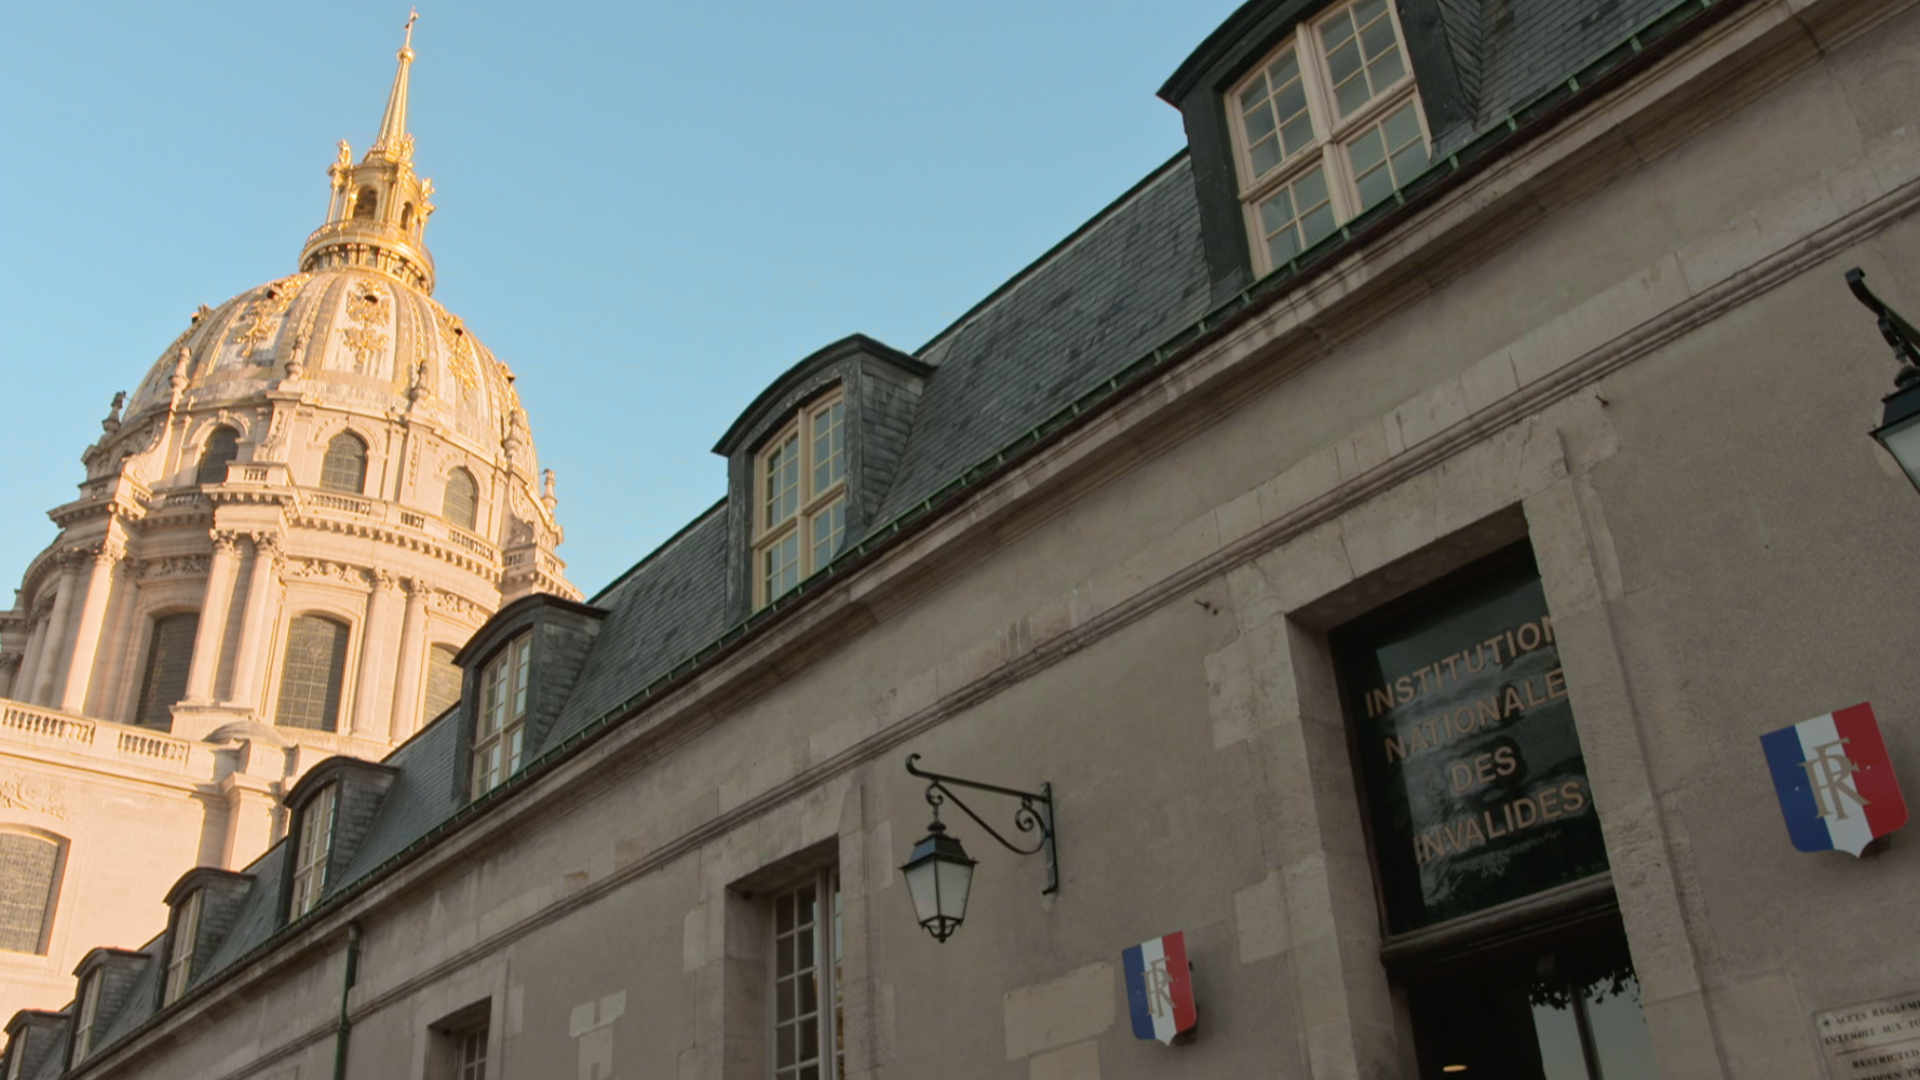 EgoDoc productions documentaire Les invalides